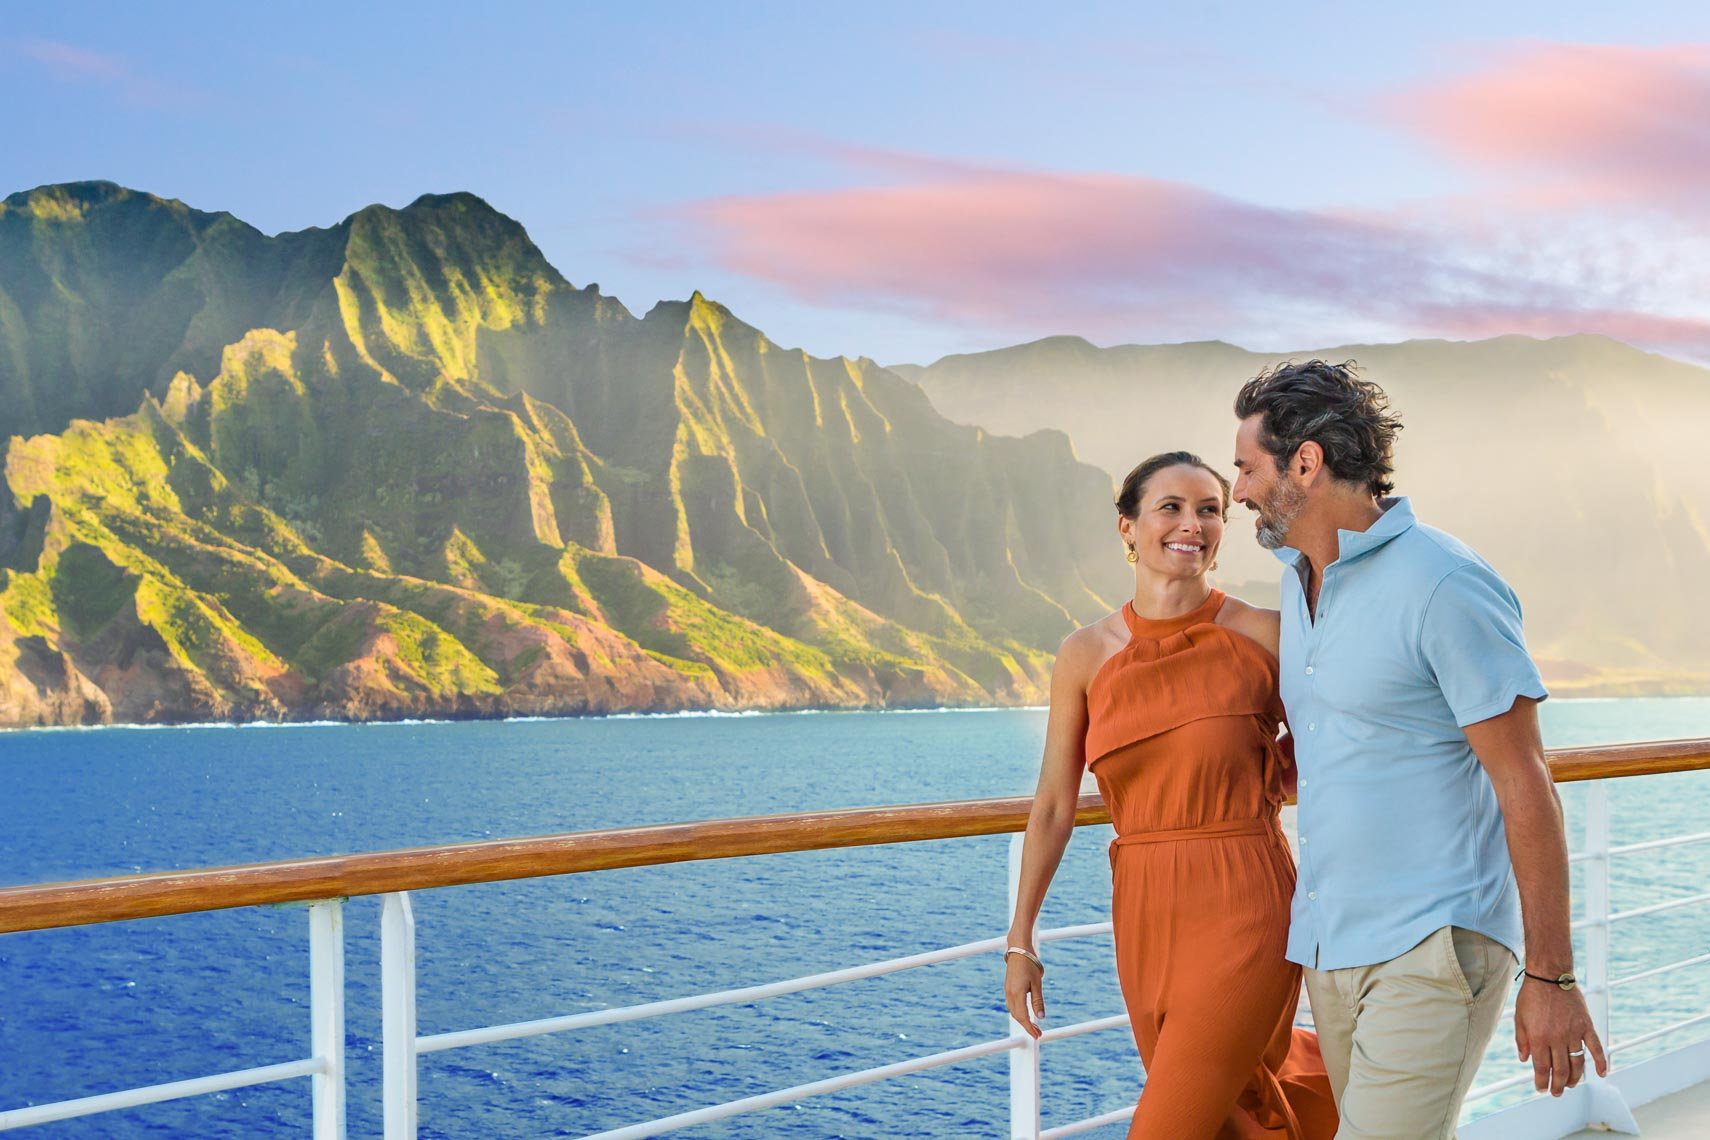 Norwegian Cruise Line Hawaii Couple Walk Deck | Michael DeYoung